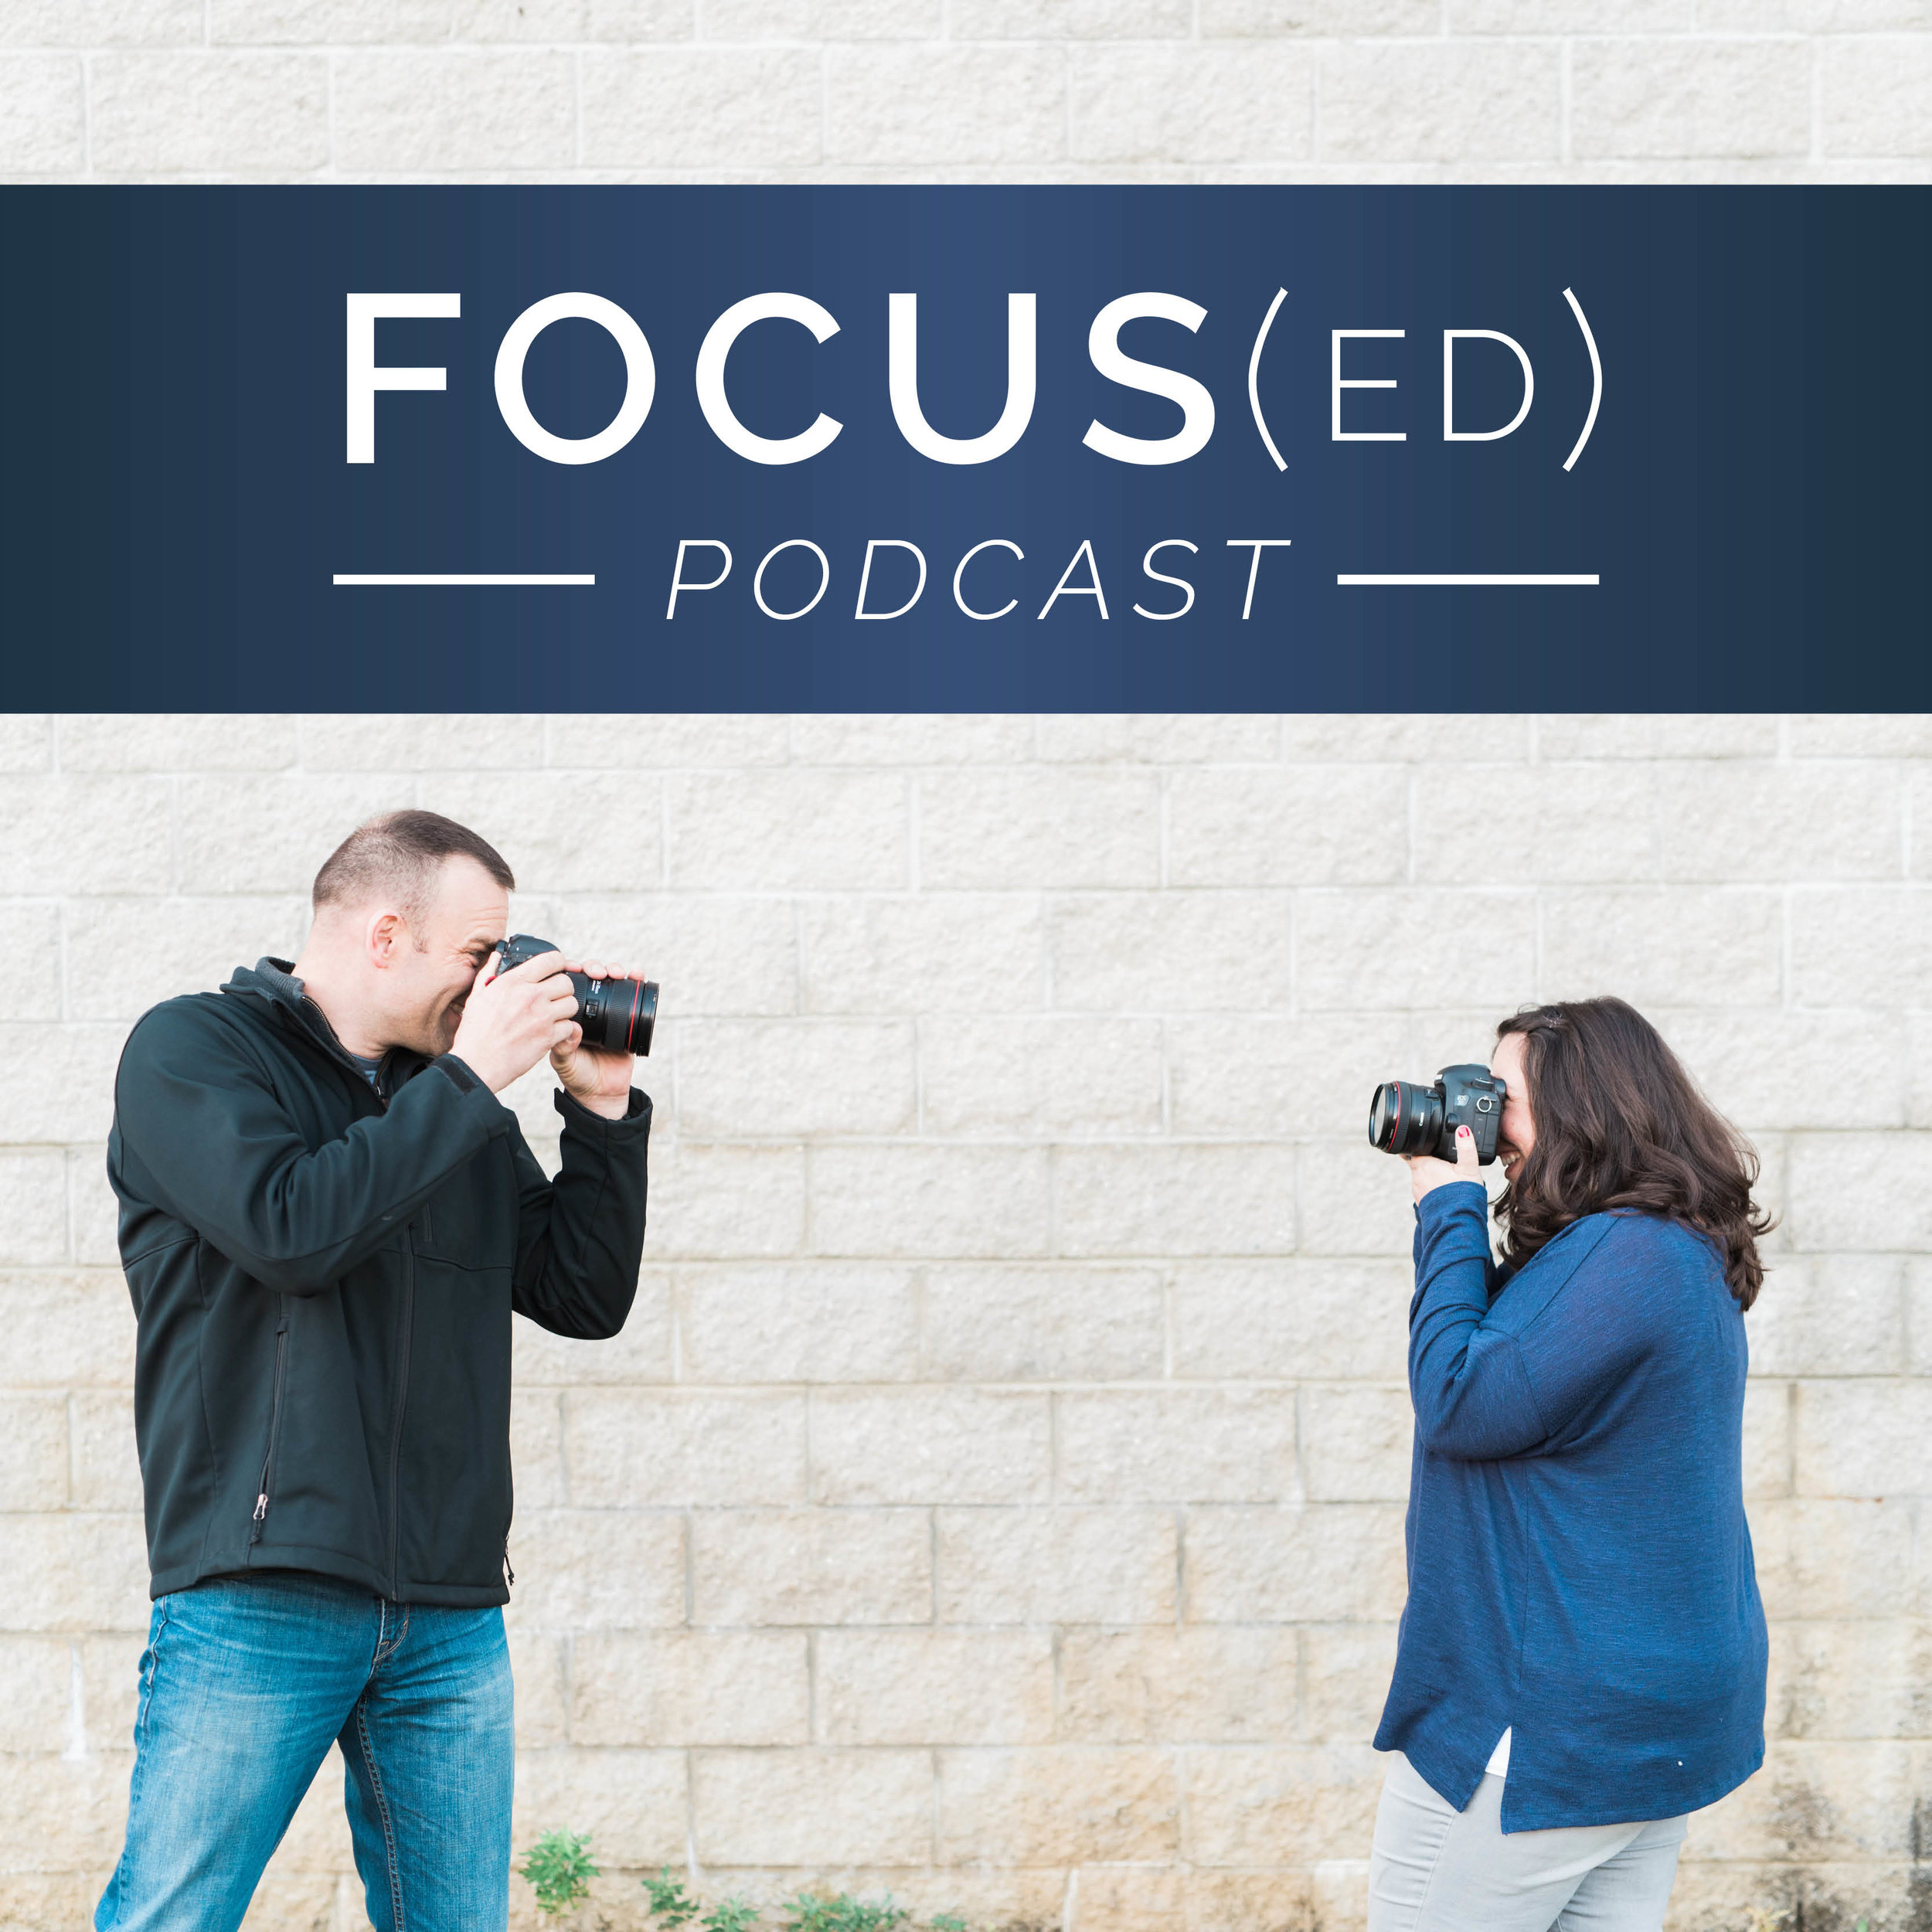 Focused Podcast : A photography, business and blogging podcast helping creatives stay focuse